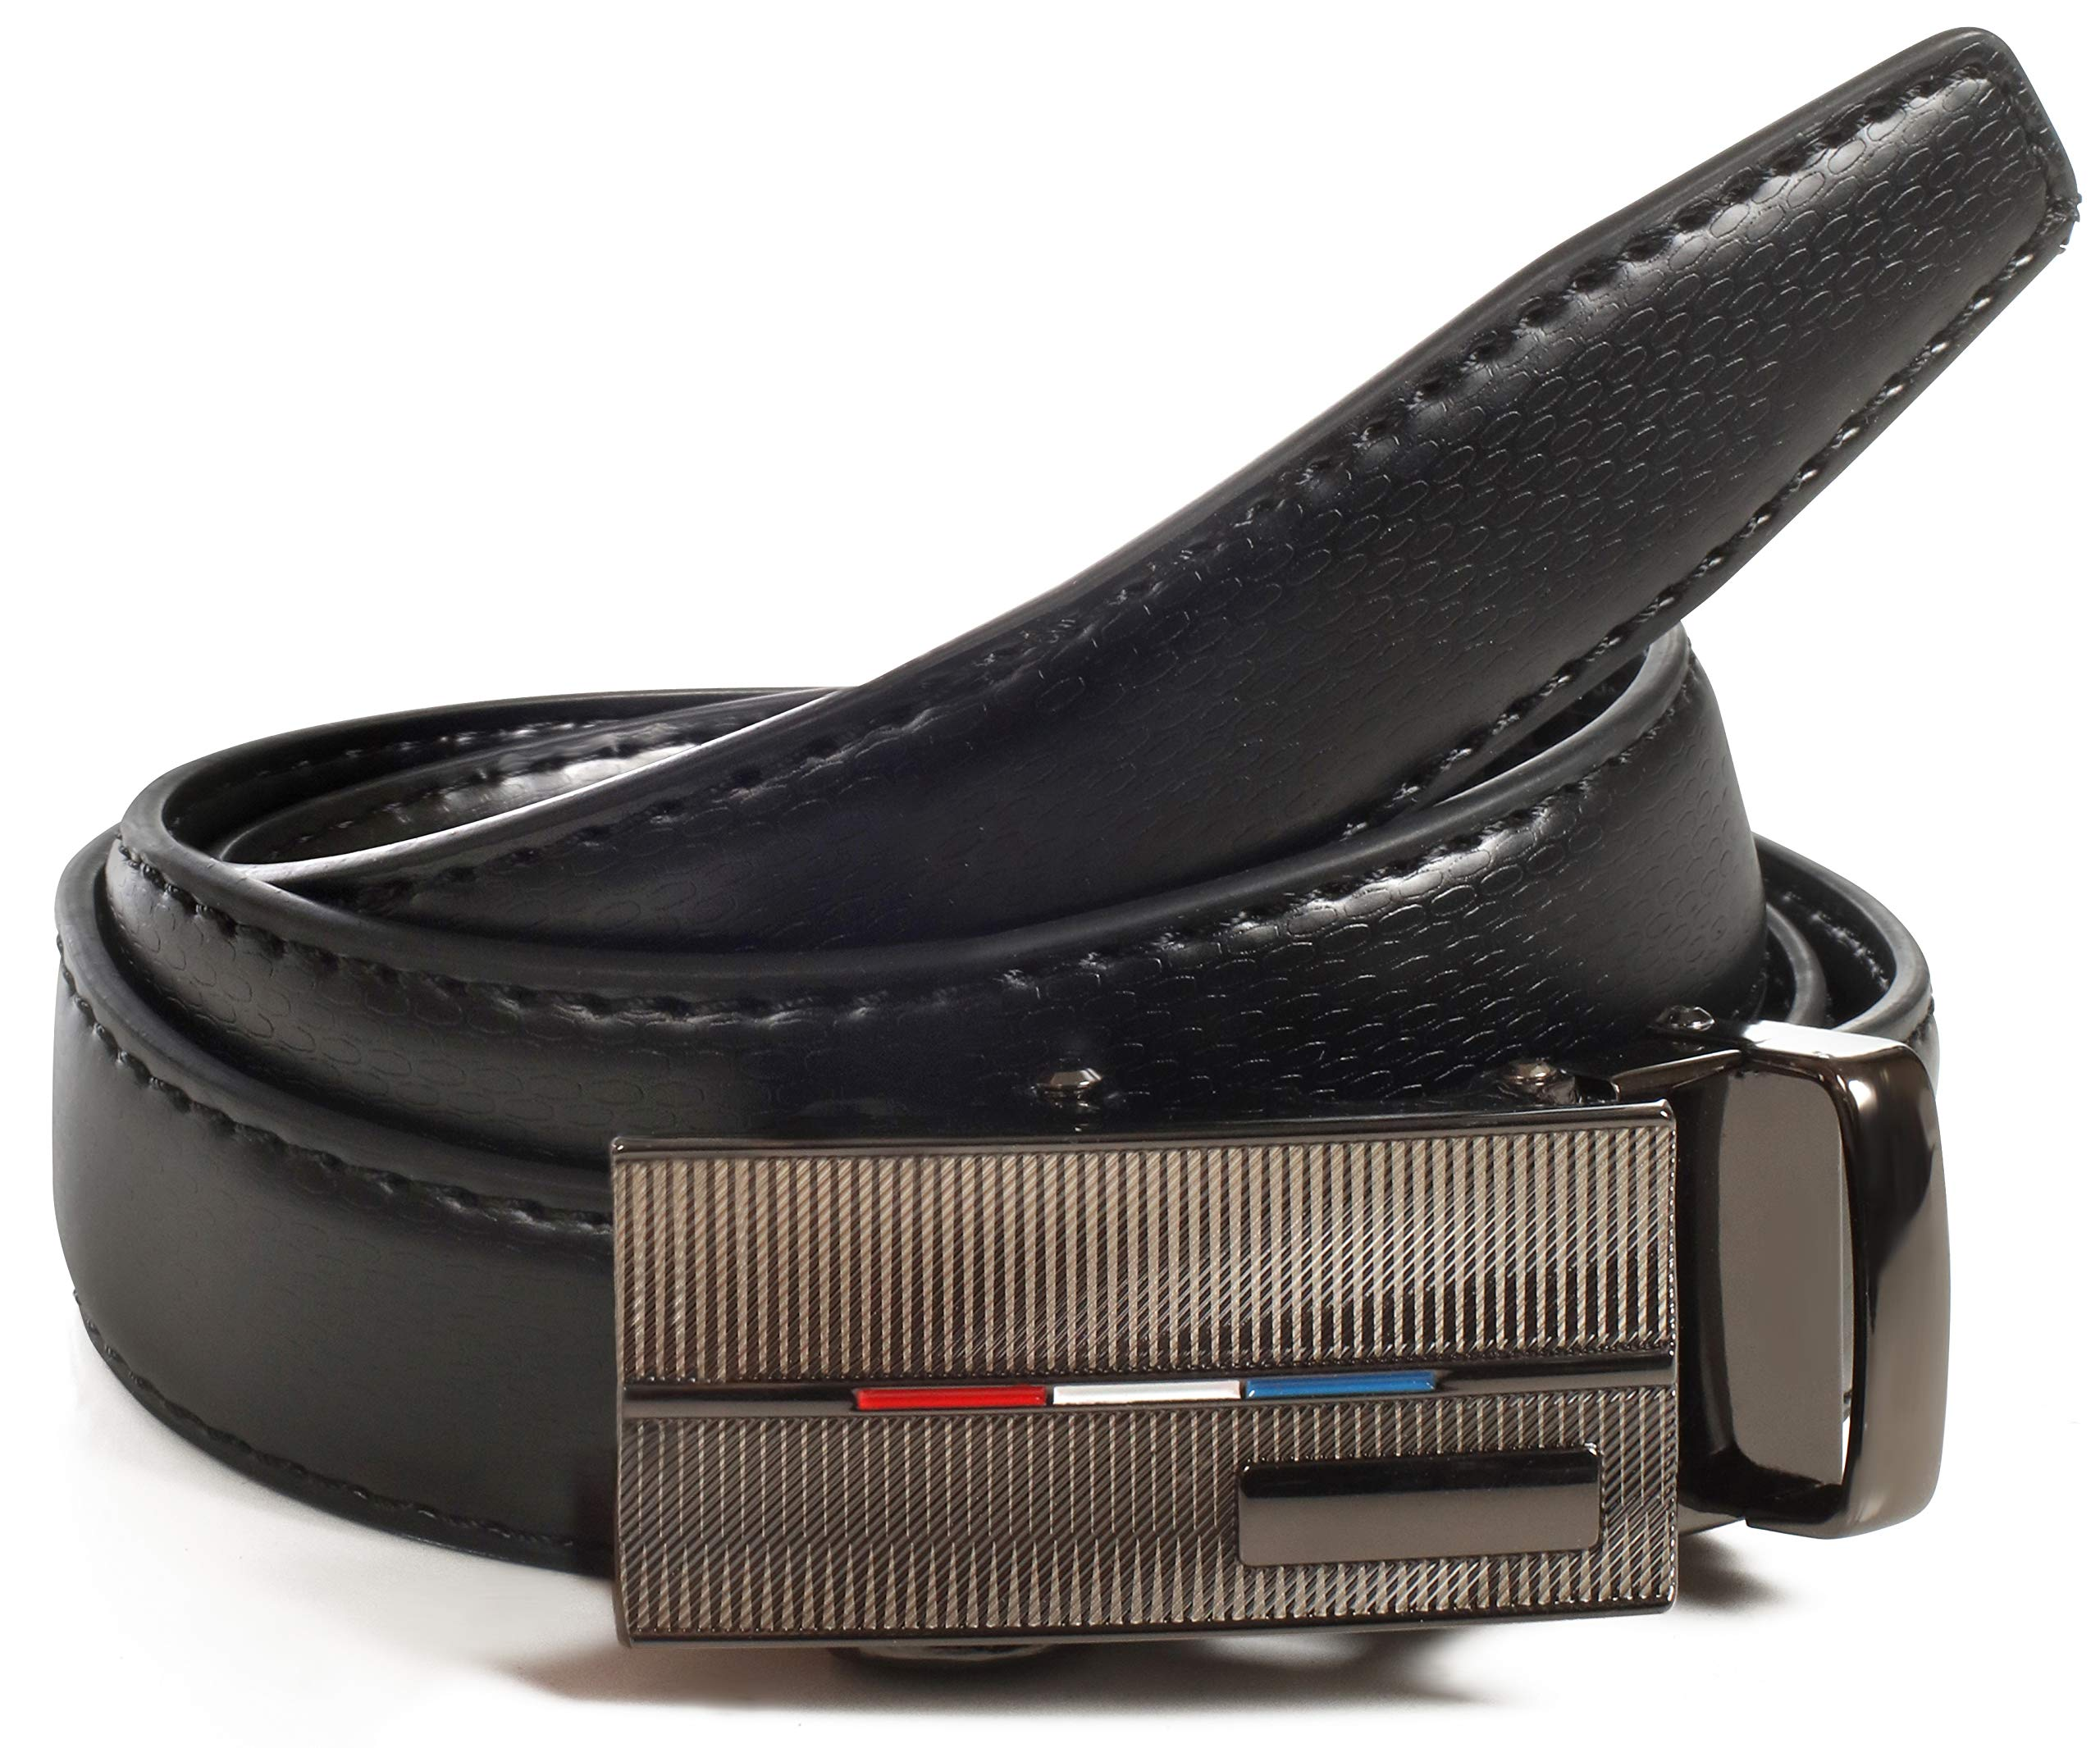 CANDOR AND CLASS Boy's Leather Ratchet Belt, Automatic Buckle, Adjustable Belt Without Holes, (Up to 32 Inch Waist, B724 Black)